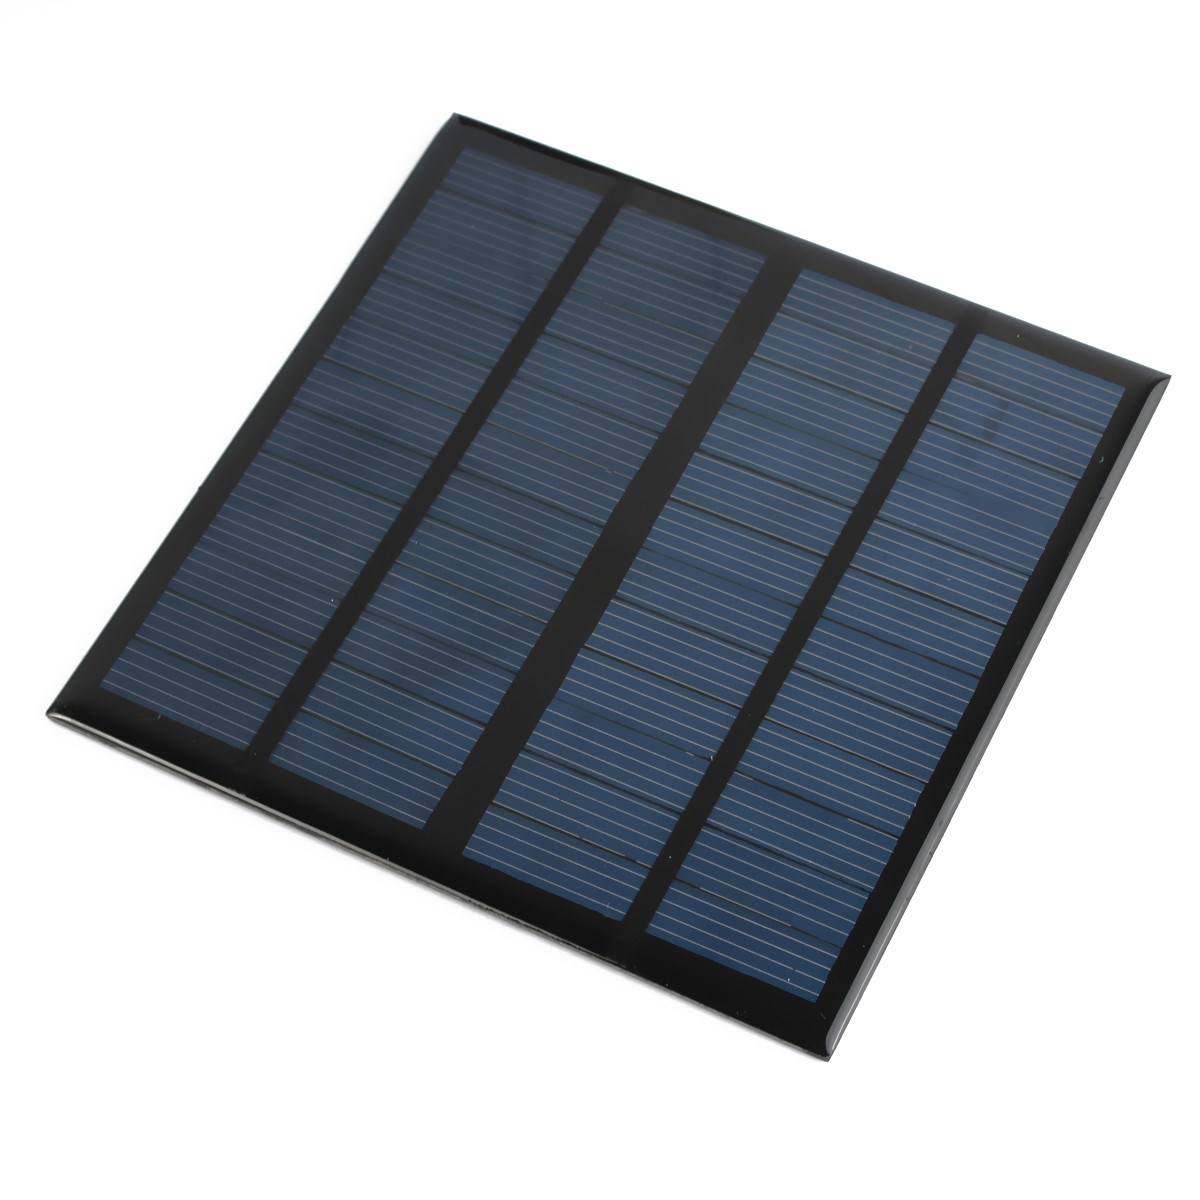 Hot Sale 12V 3W Epoxy Solar Panel Monocrystalline Silicon DIY Solar Cells For Light Battery Phone Charger Module Portable(China (Mainland))